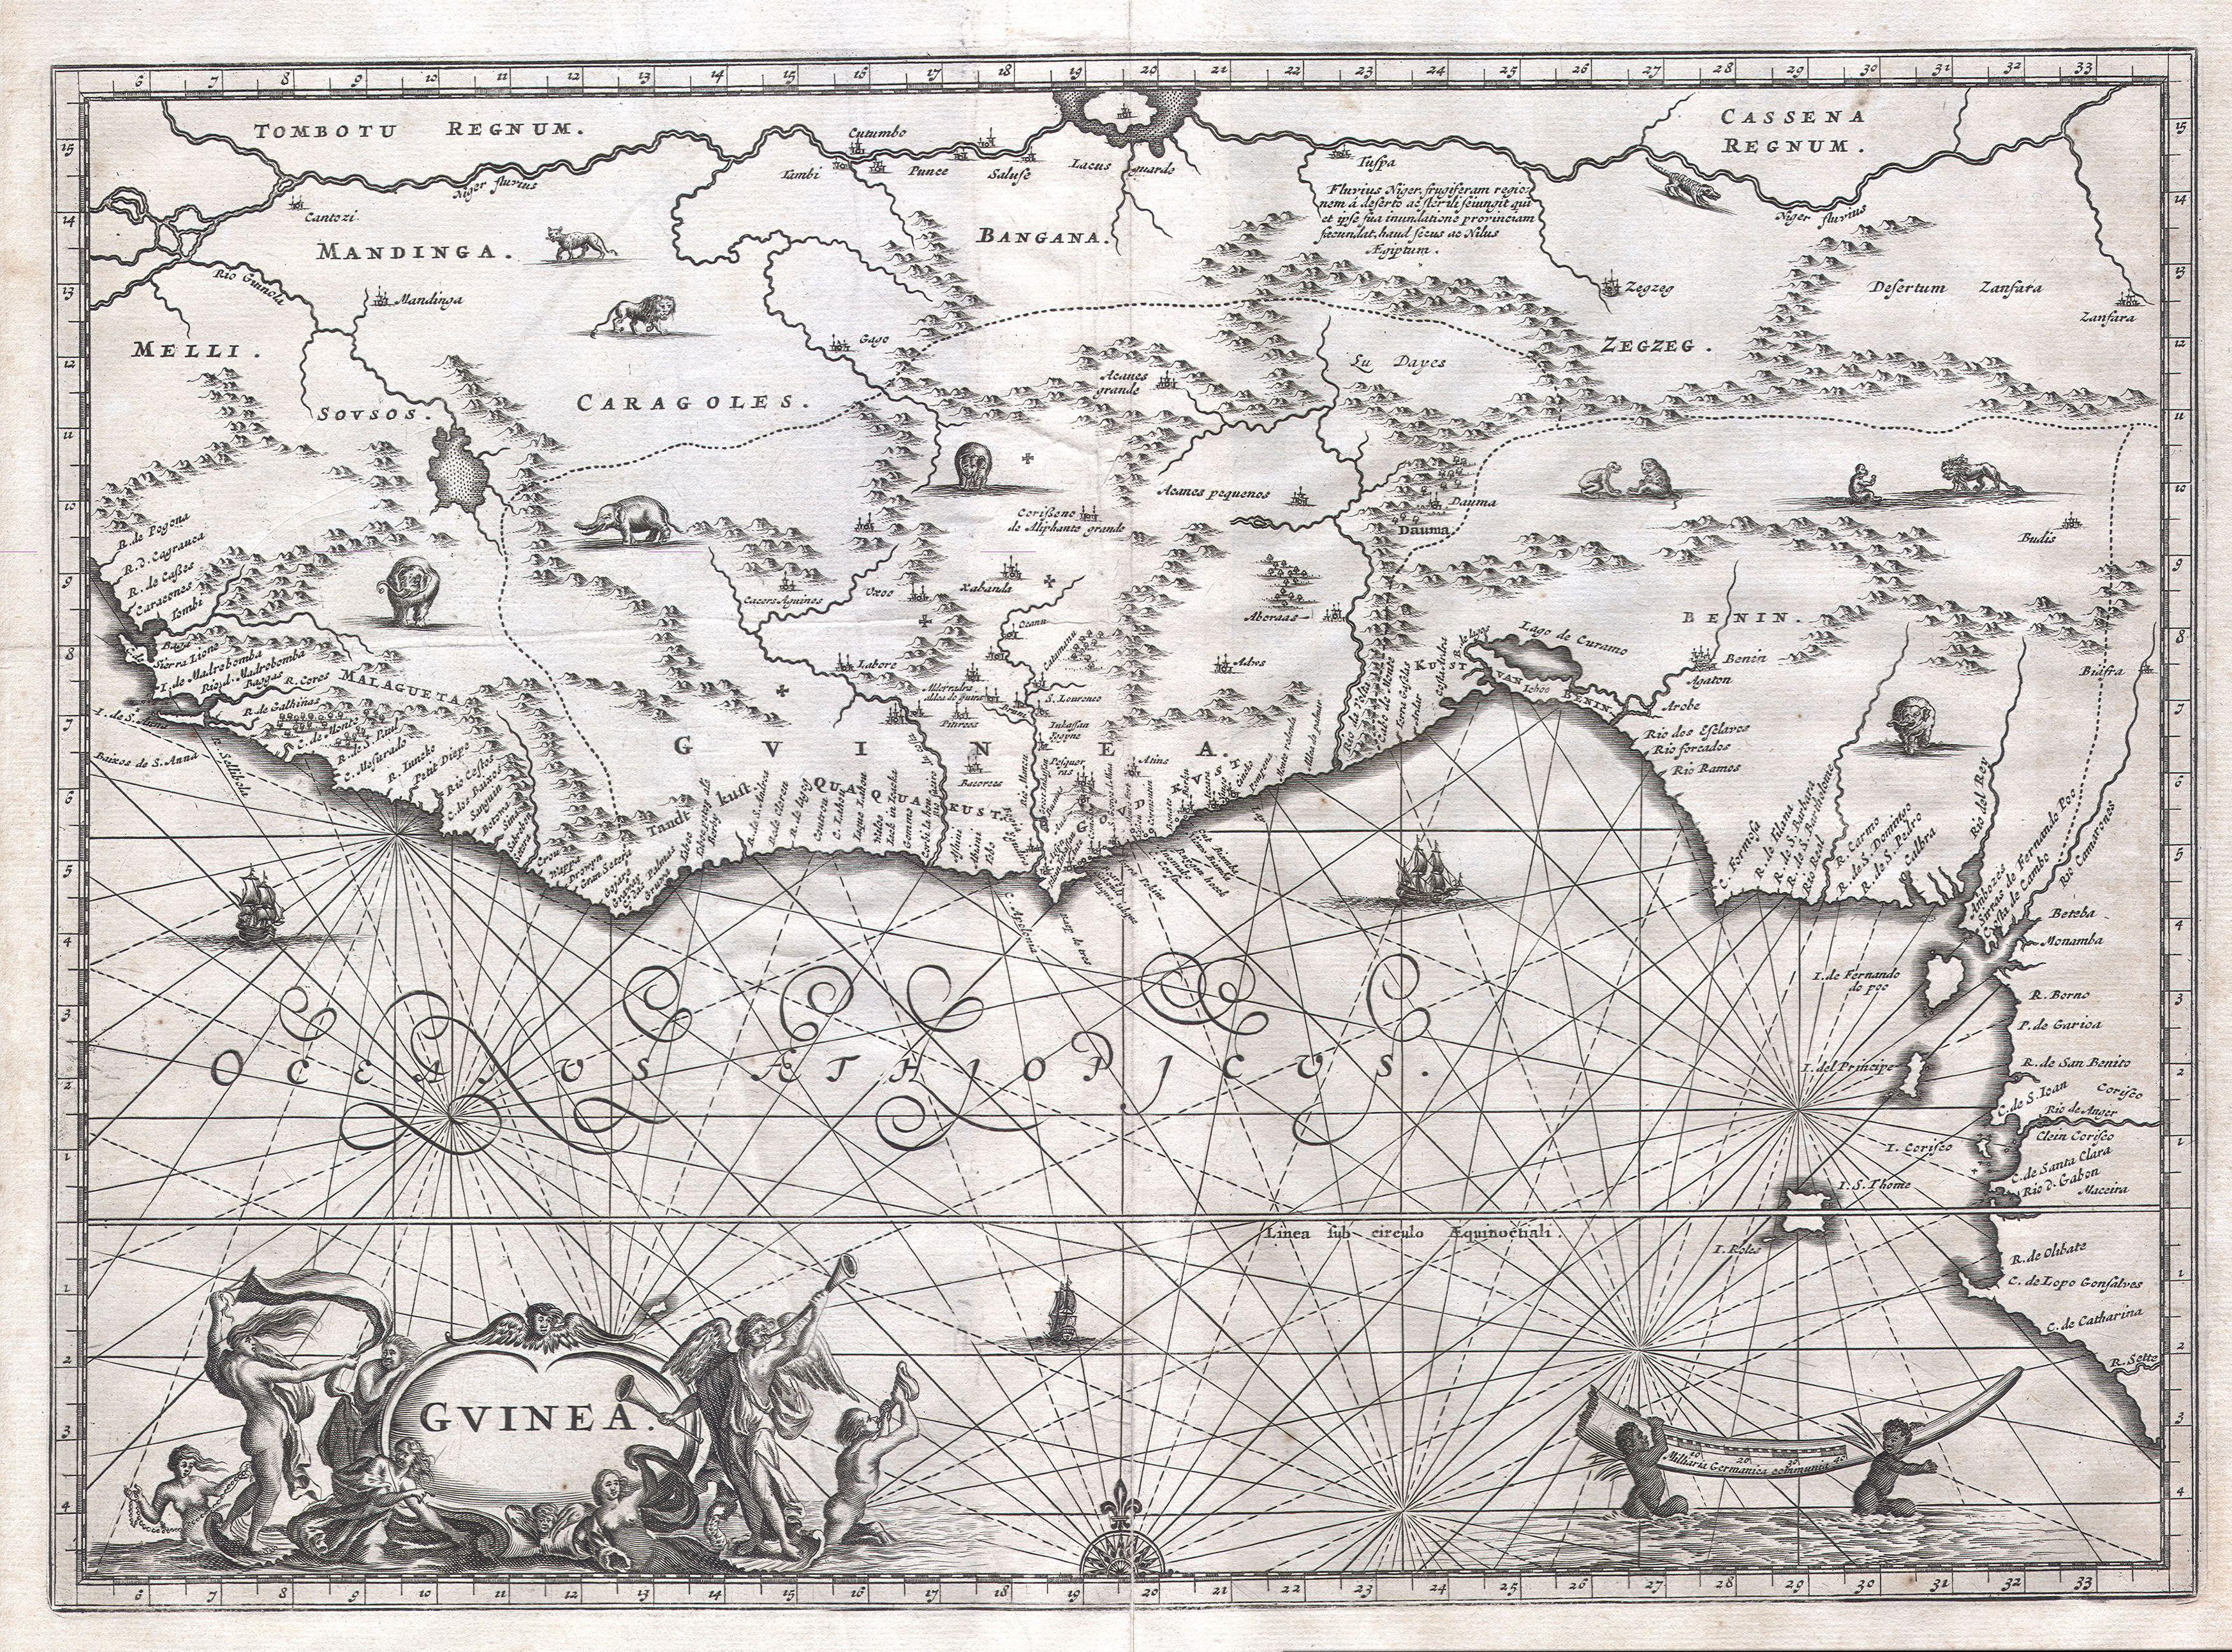 File:1670 Ogilby Map of West Africa ( Gold Coast, Slave Coast